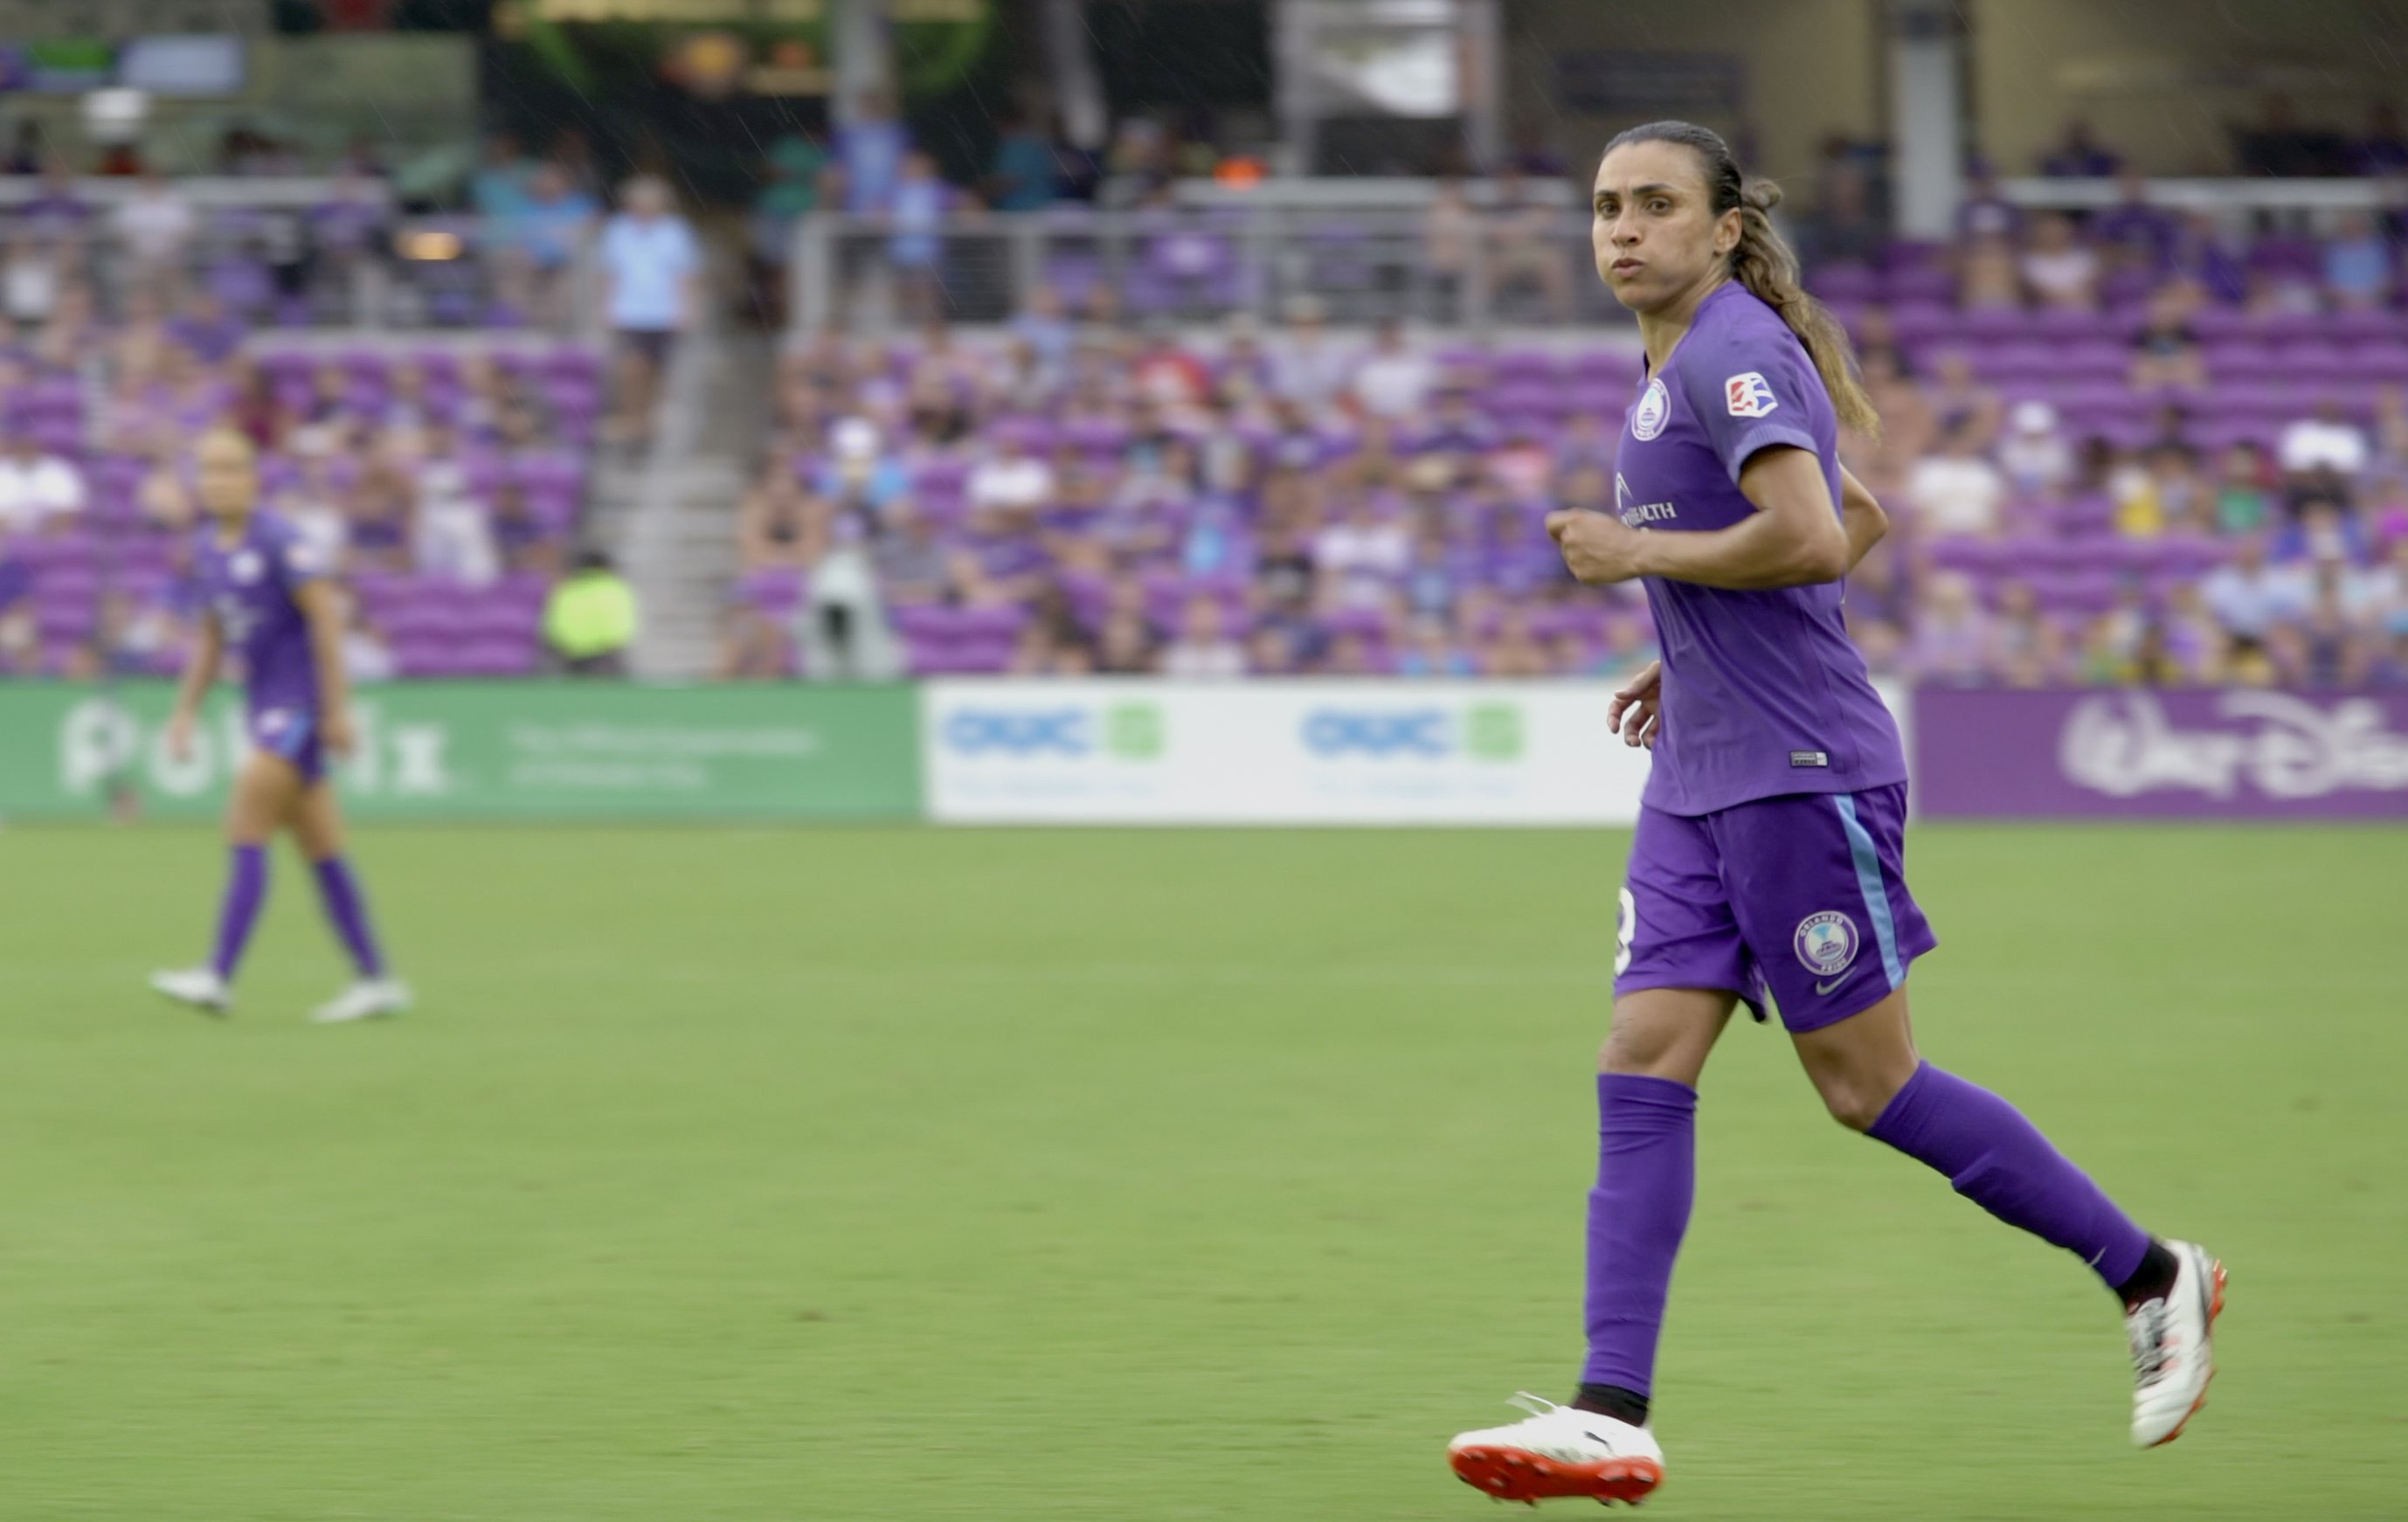 Marta playing for Orlando Pride